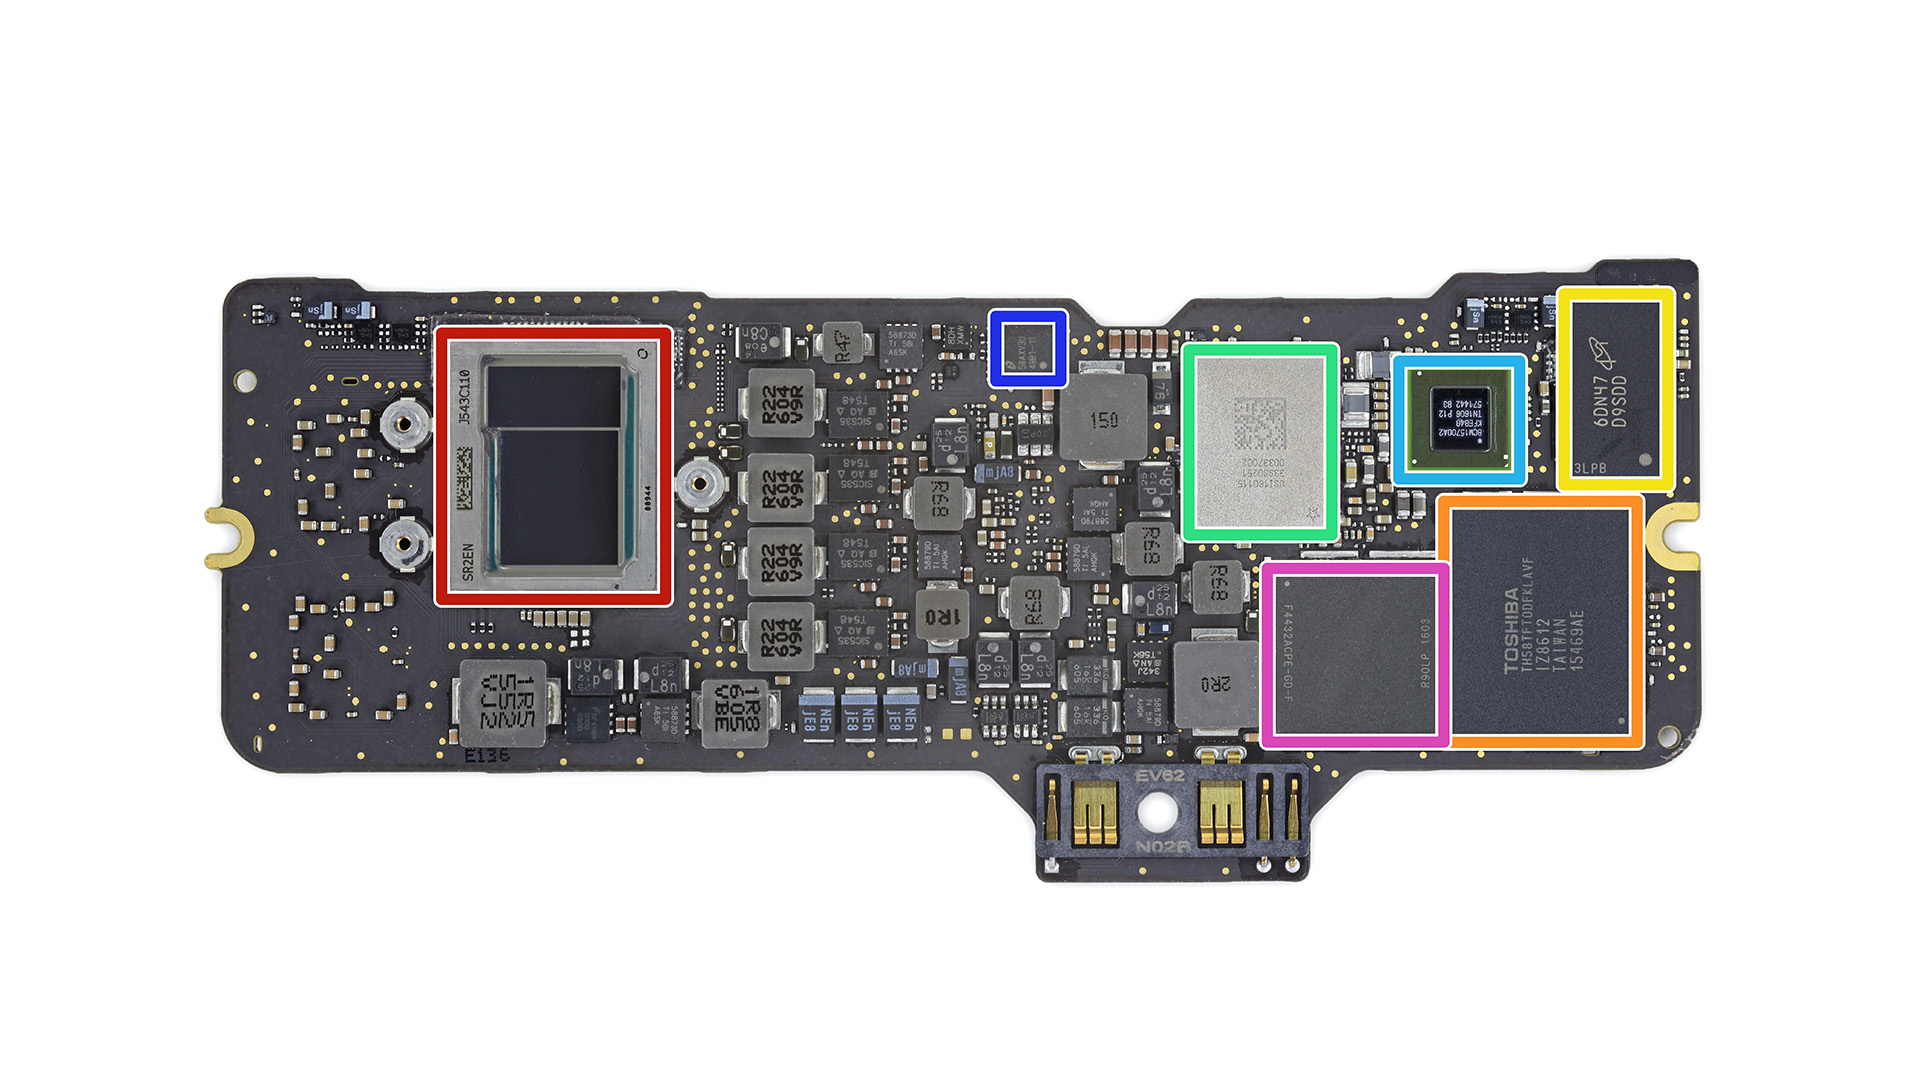 MacBook skylake pcb_1